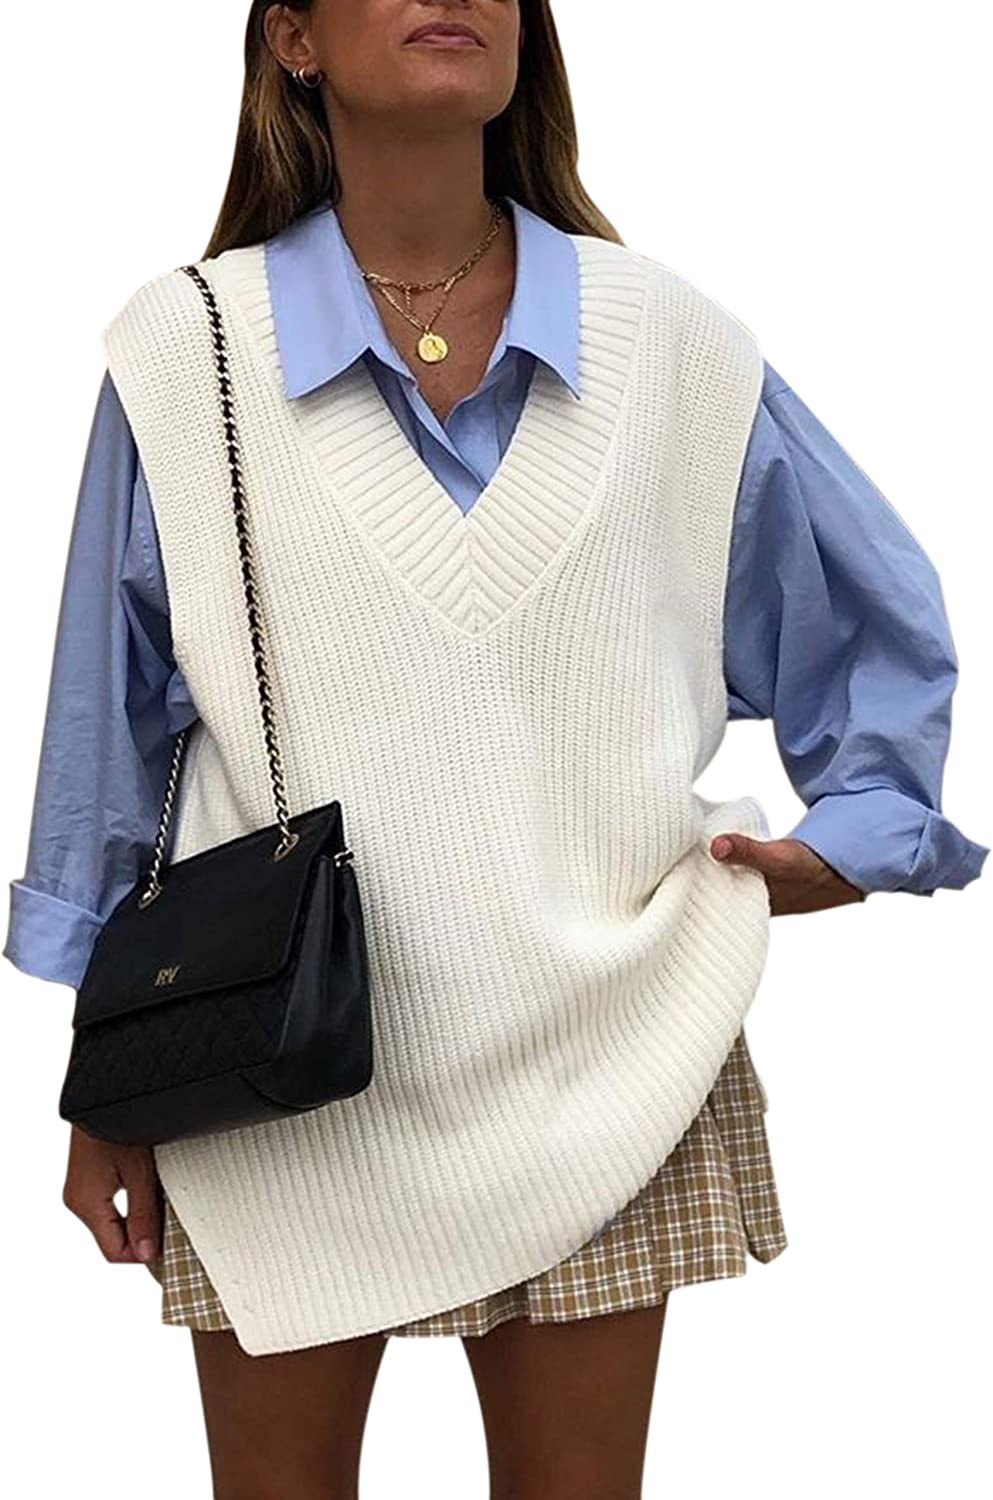 SAFRISIOR Women Oversize Sweater Vest V Neck Sleeveless Knitted Jumper Casual Pullover Sweater Preppy Style Vests